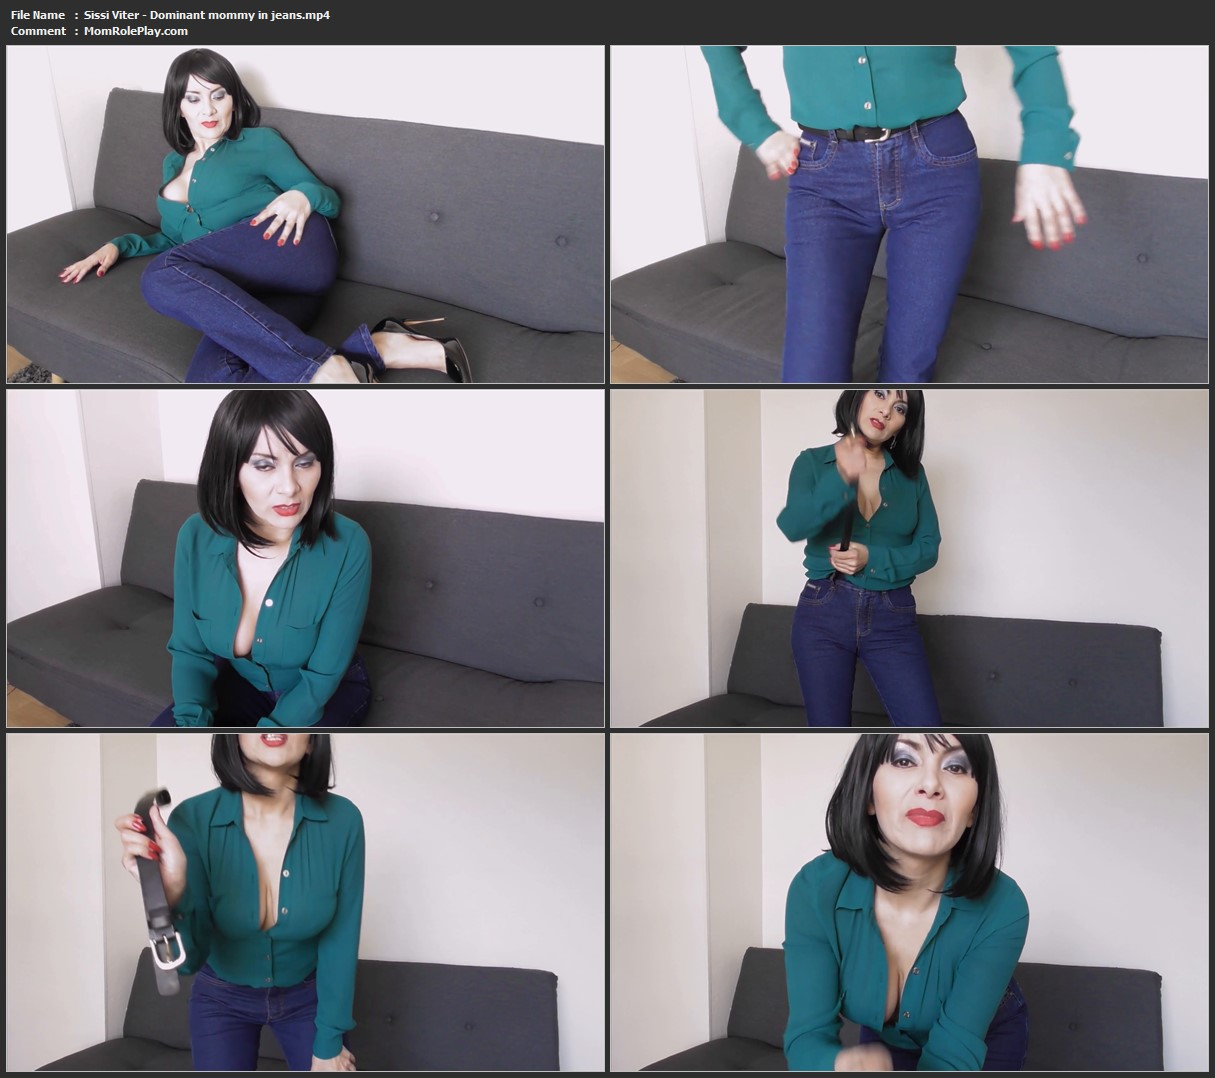 Sissi Viter - Dominant mommy in jeans